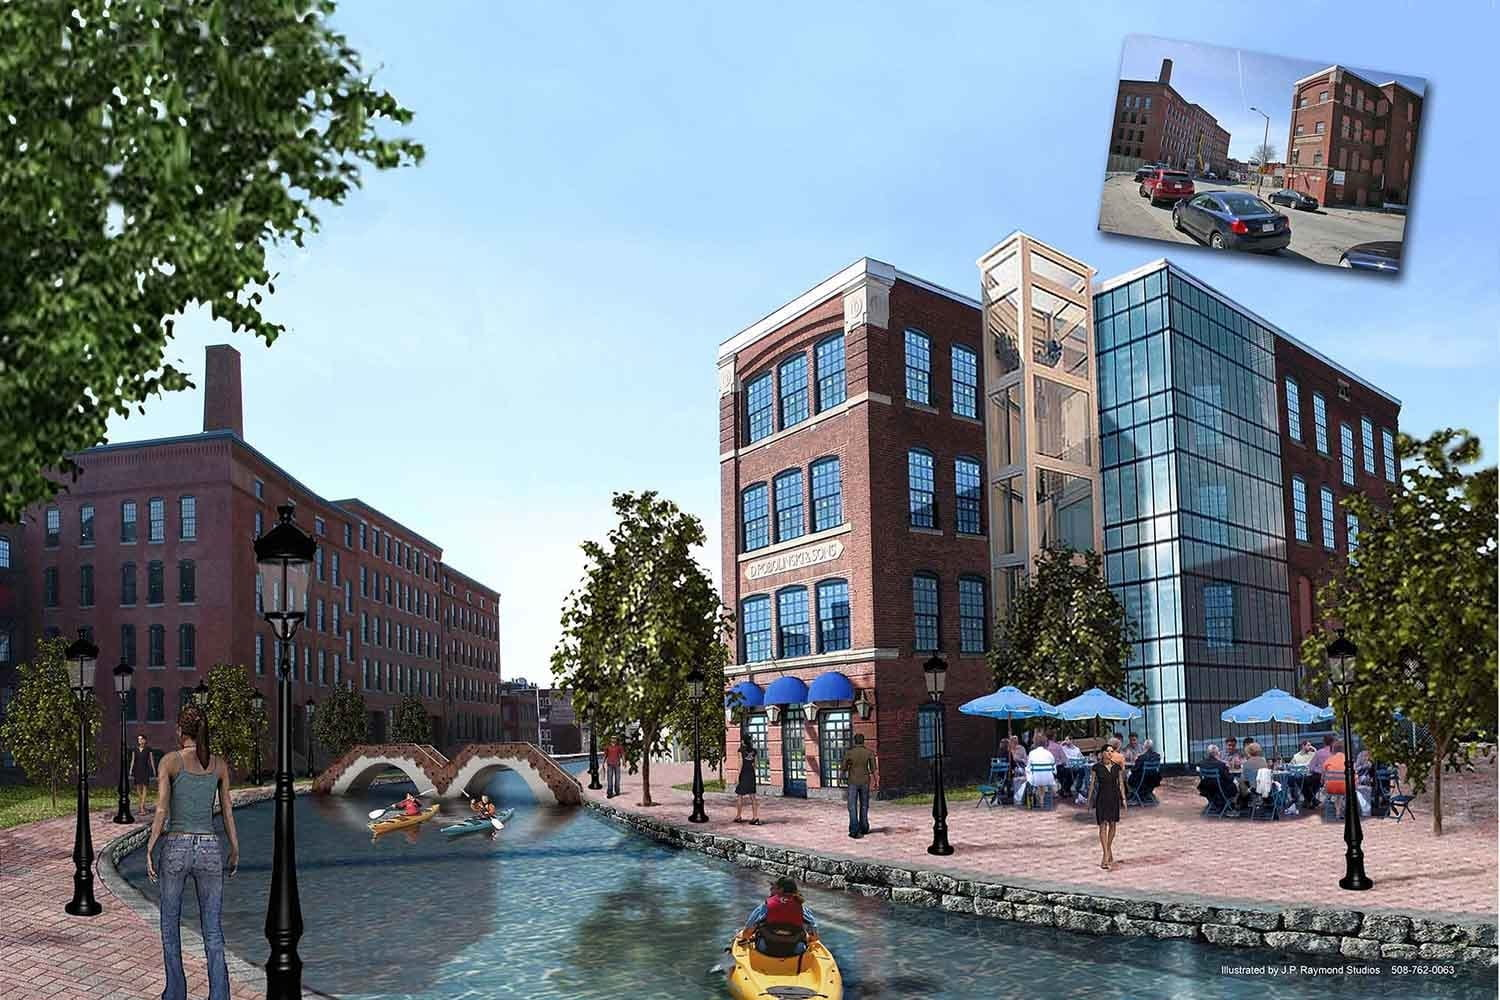 """A WCPC project conducted by WPI students Robert Crimmins, John Messier, Daniel Ouellette, and Nicolaus Spunar, in partnership with the Blackstone Canal District Alliance, is featured in an article titled, """"Study finds Blackstone Canal opening could deliver huge return on investment for Worcester"""" and published on MassLive.com."""